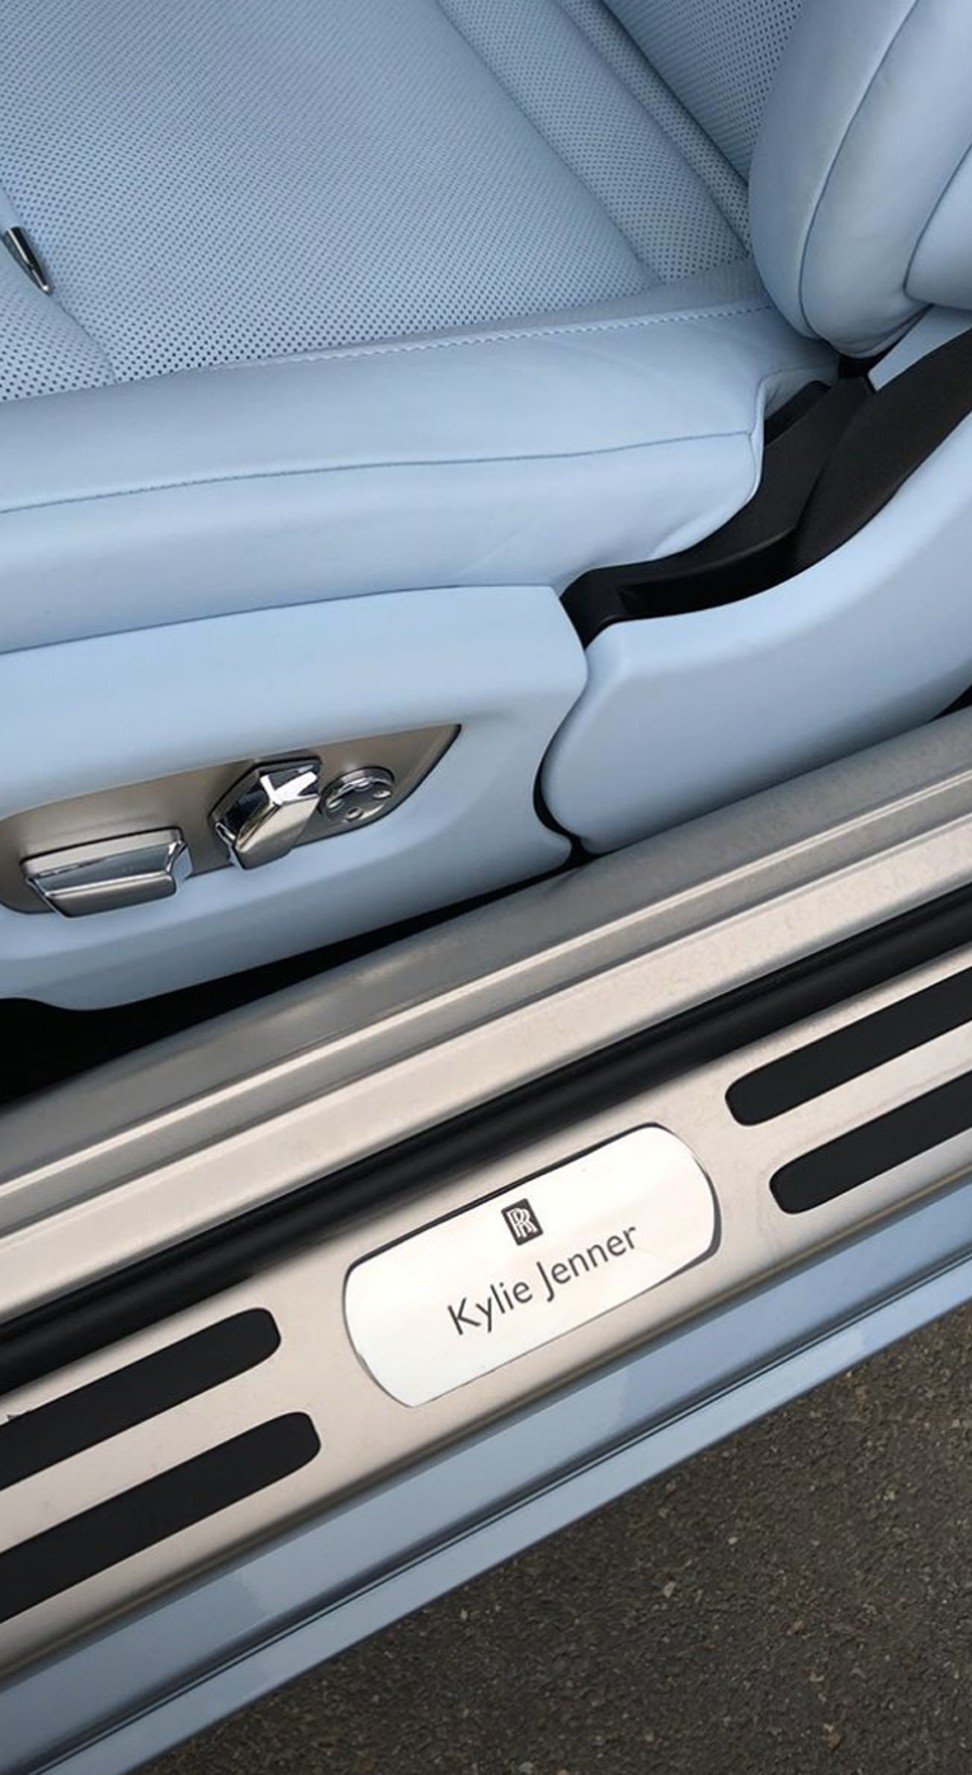 Kardashian S Star Kylie Jenner S First Custom Car Is An Icy Blue Rolls Royce Wraith And It Cost A Meagre Us 320 000 South China Morning Post